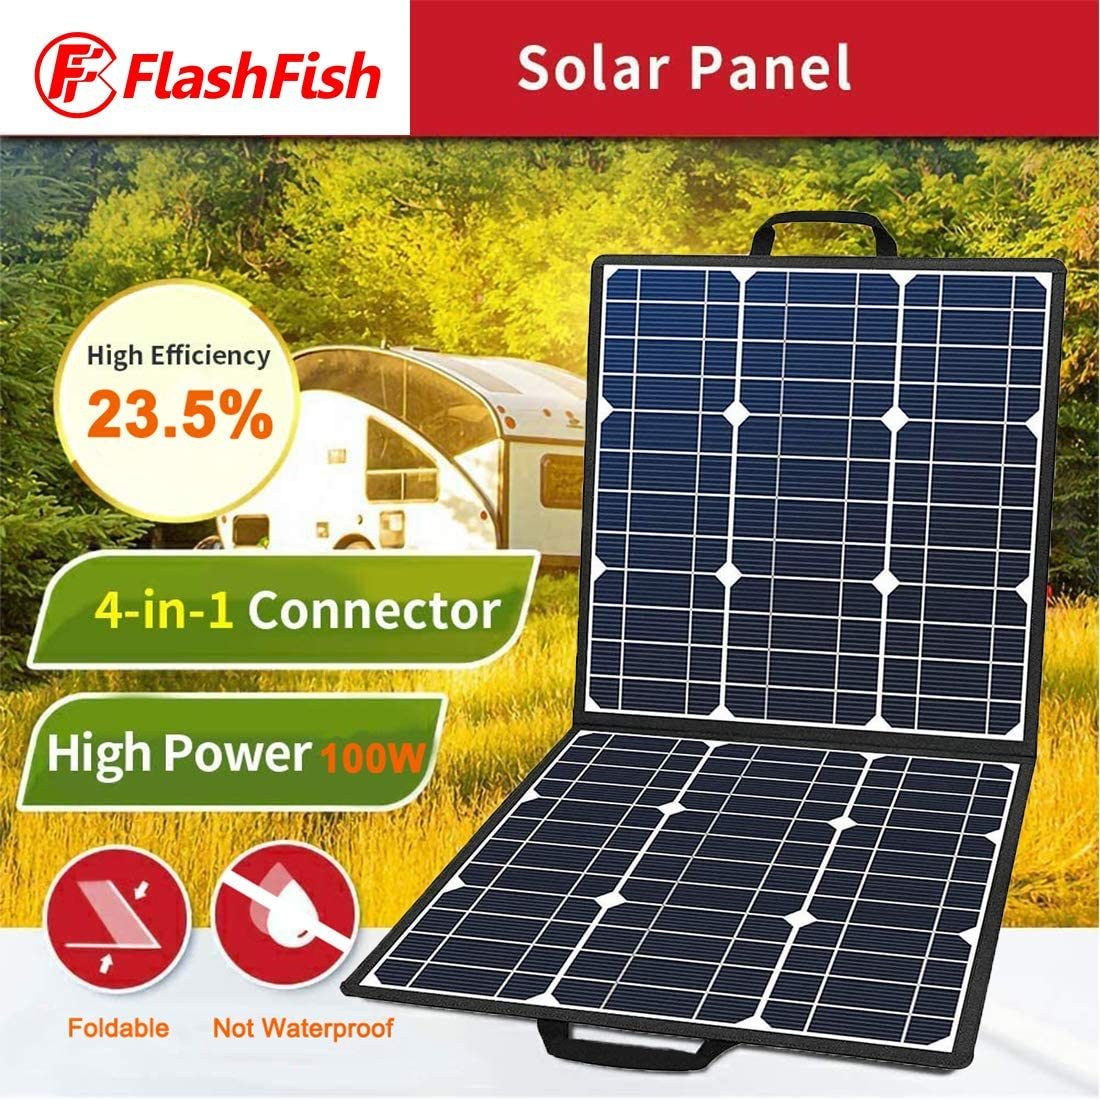 100W 18V Portable Solar Panel, Flashfish Foldable Solar Charger with 5V USB 18V DC Output Compatible with Portable Generator, Smartphones, Tablets and More